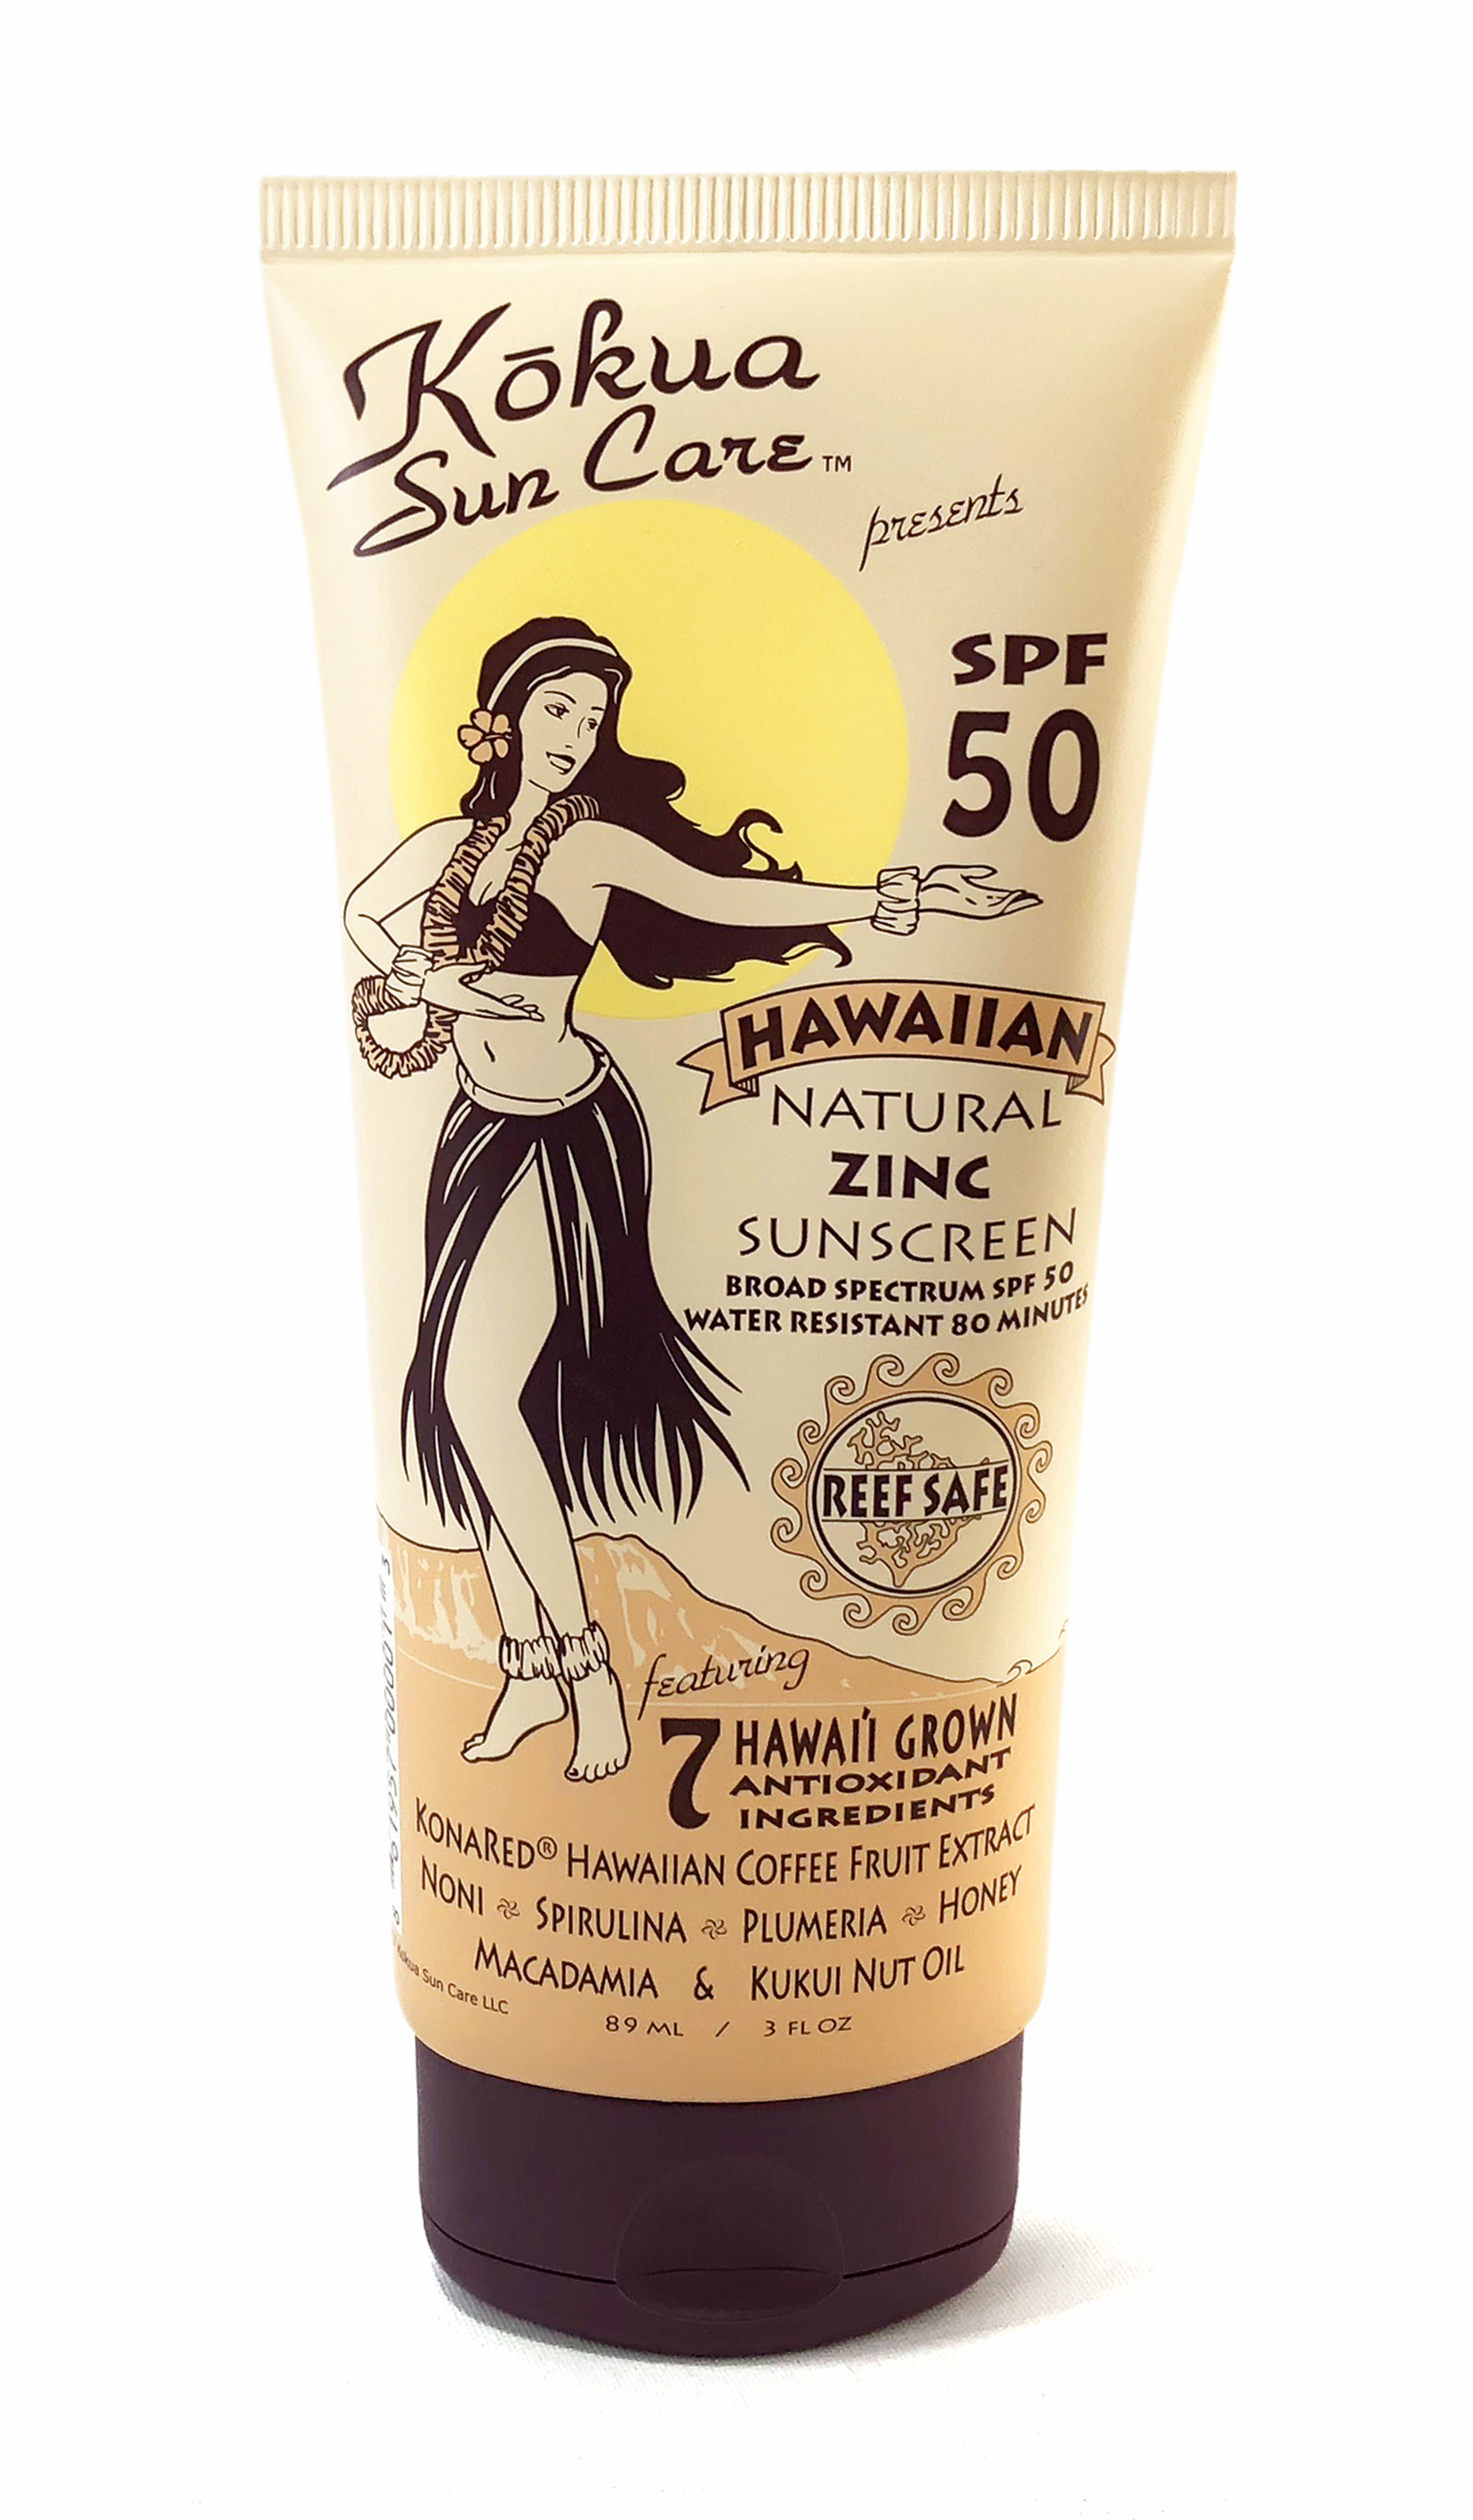 Kokua Sun Care Hawaiian Natural Zinc Sunscreen SPF 50 White BG 300 DPI -PRINT.jpg